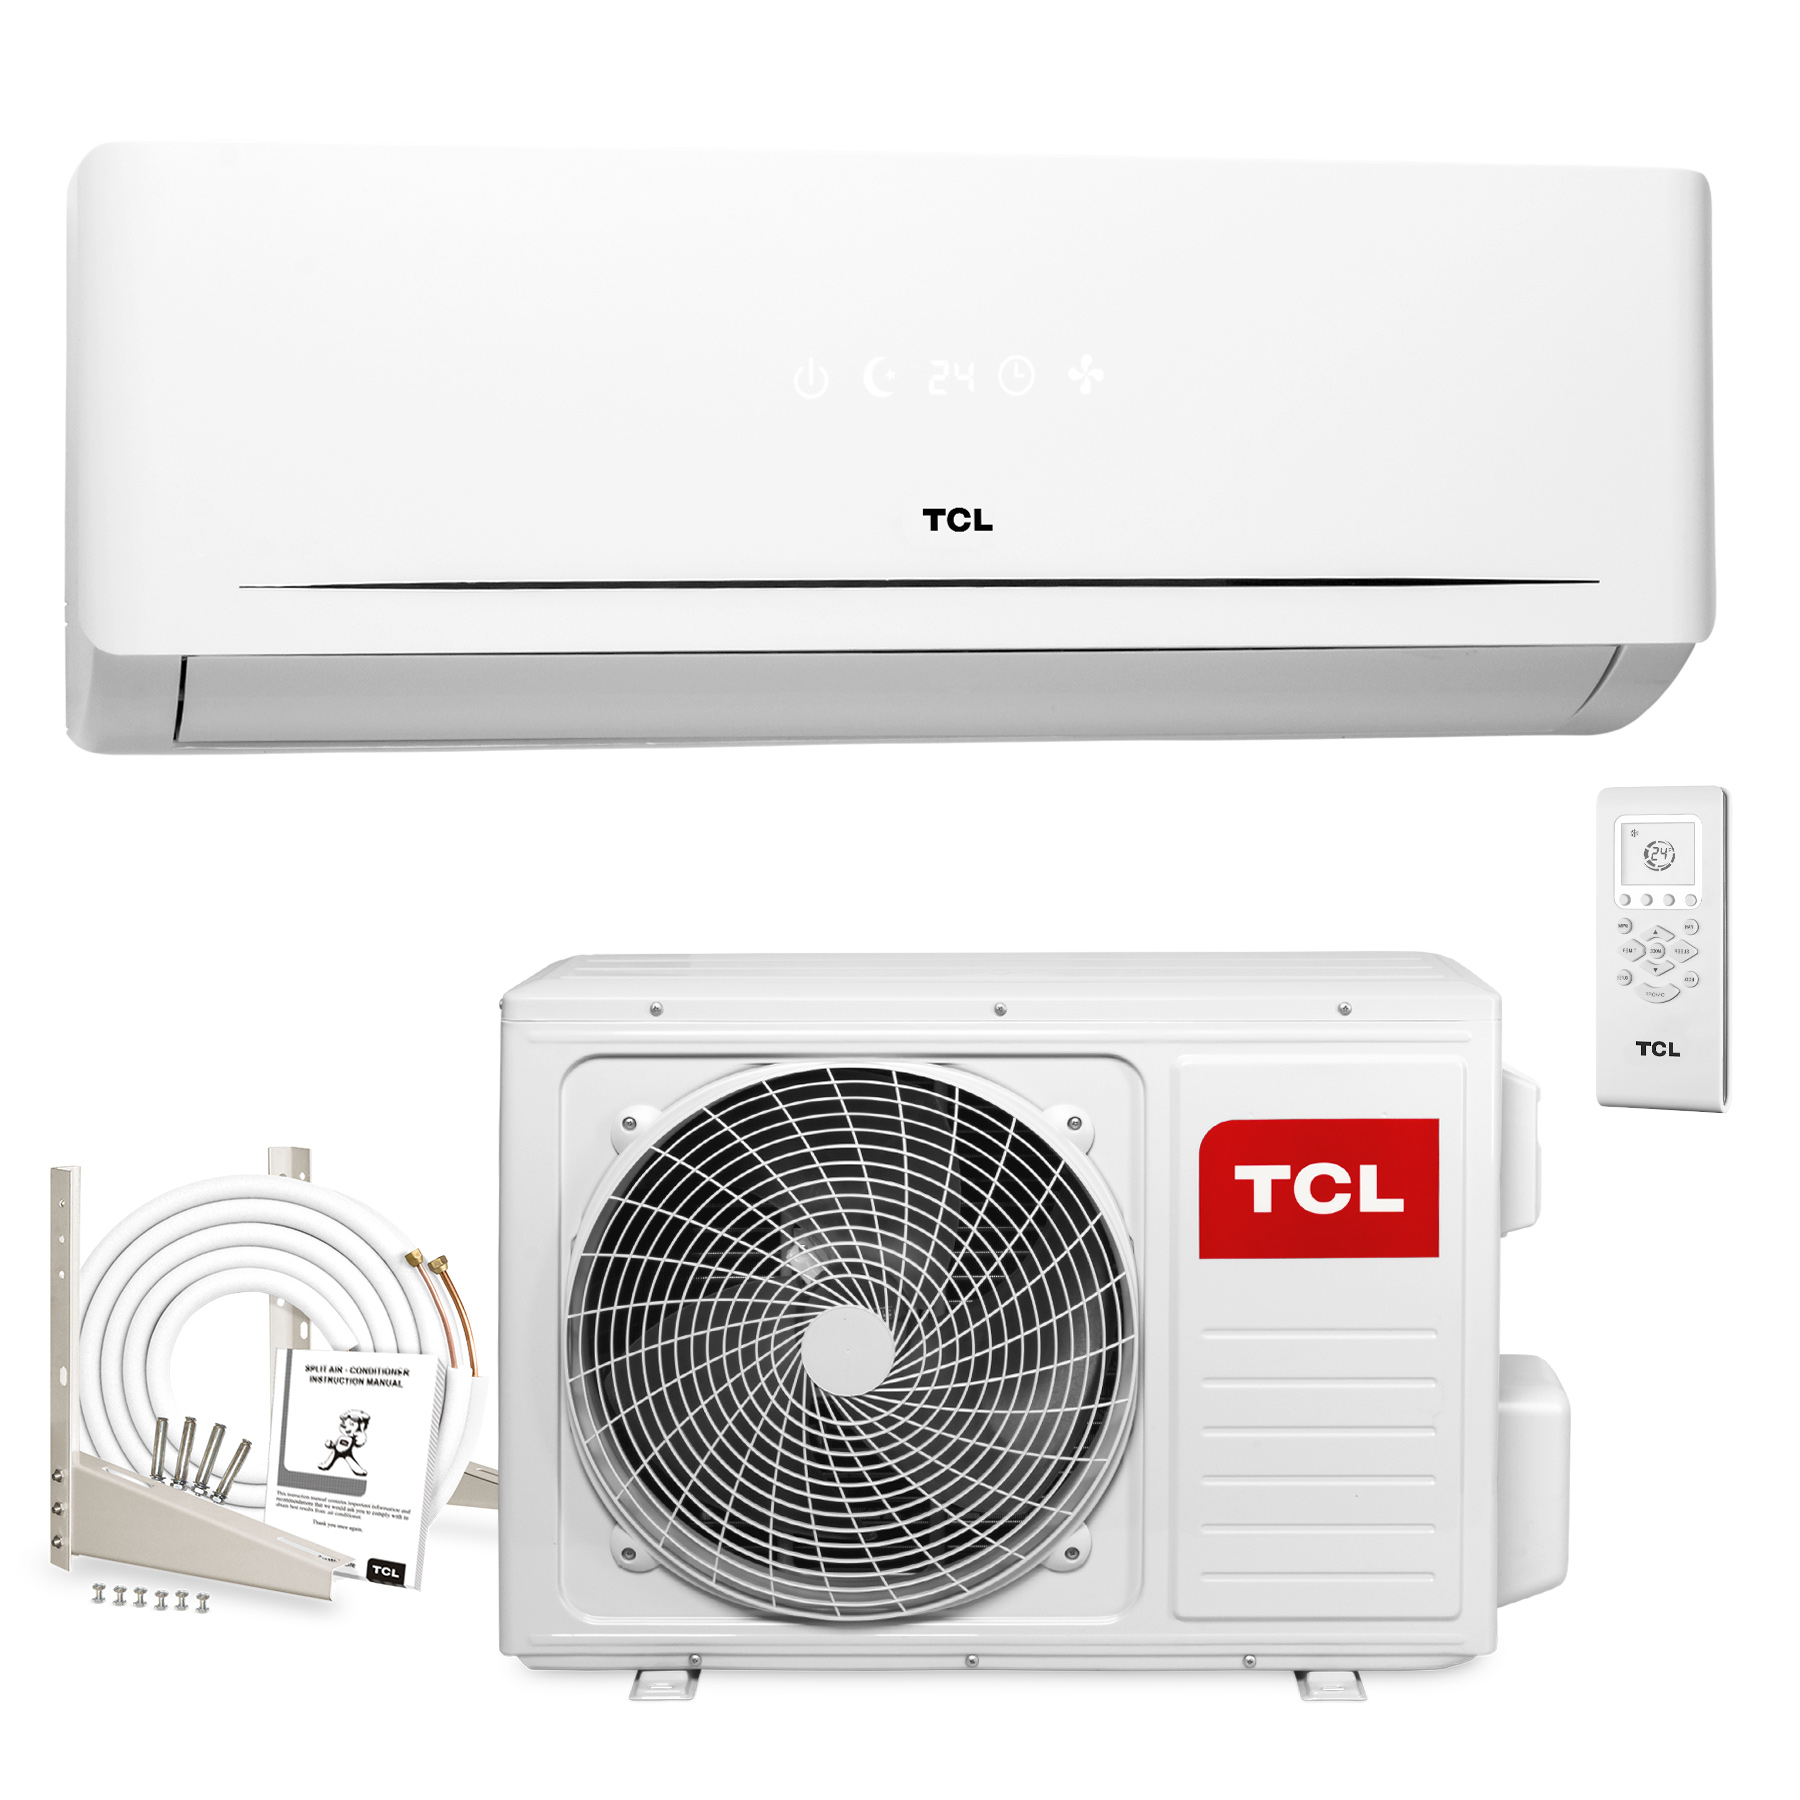 tcl inverter split klimaanlage 12000 btu 3 5kw klima. Black Bedroom Furniture Sets. Home Design Ideas